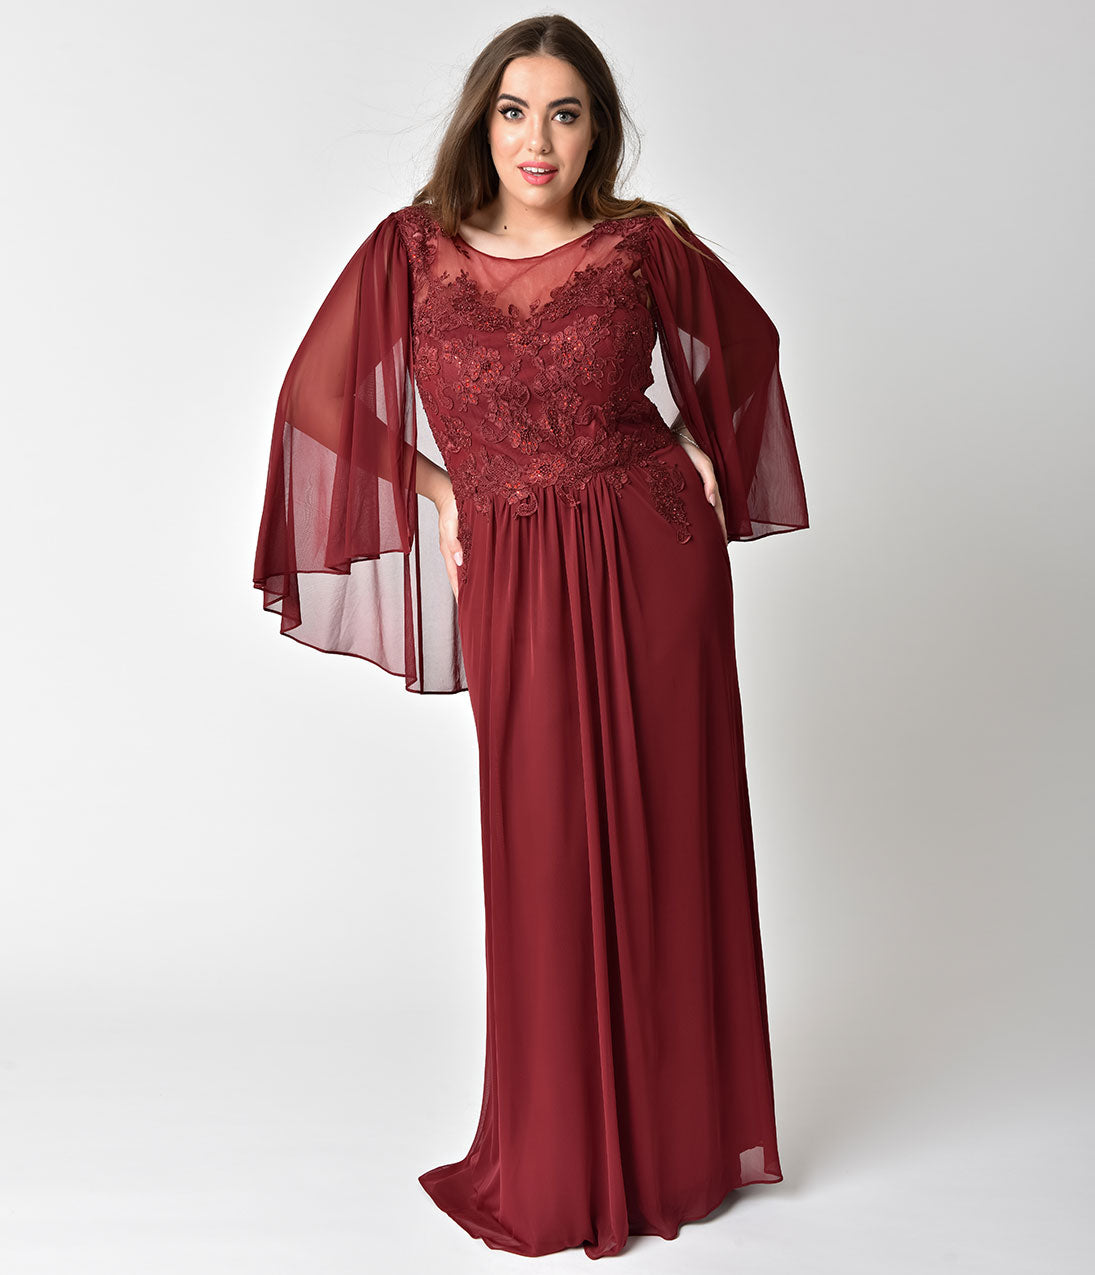 1930s Evening Dresses | Old Hollywood Dress Plus Size Burgundy Red Embellished Mesh Sleeved Cape Gown $238.00 AT vintagedancer.com